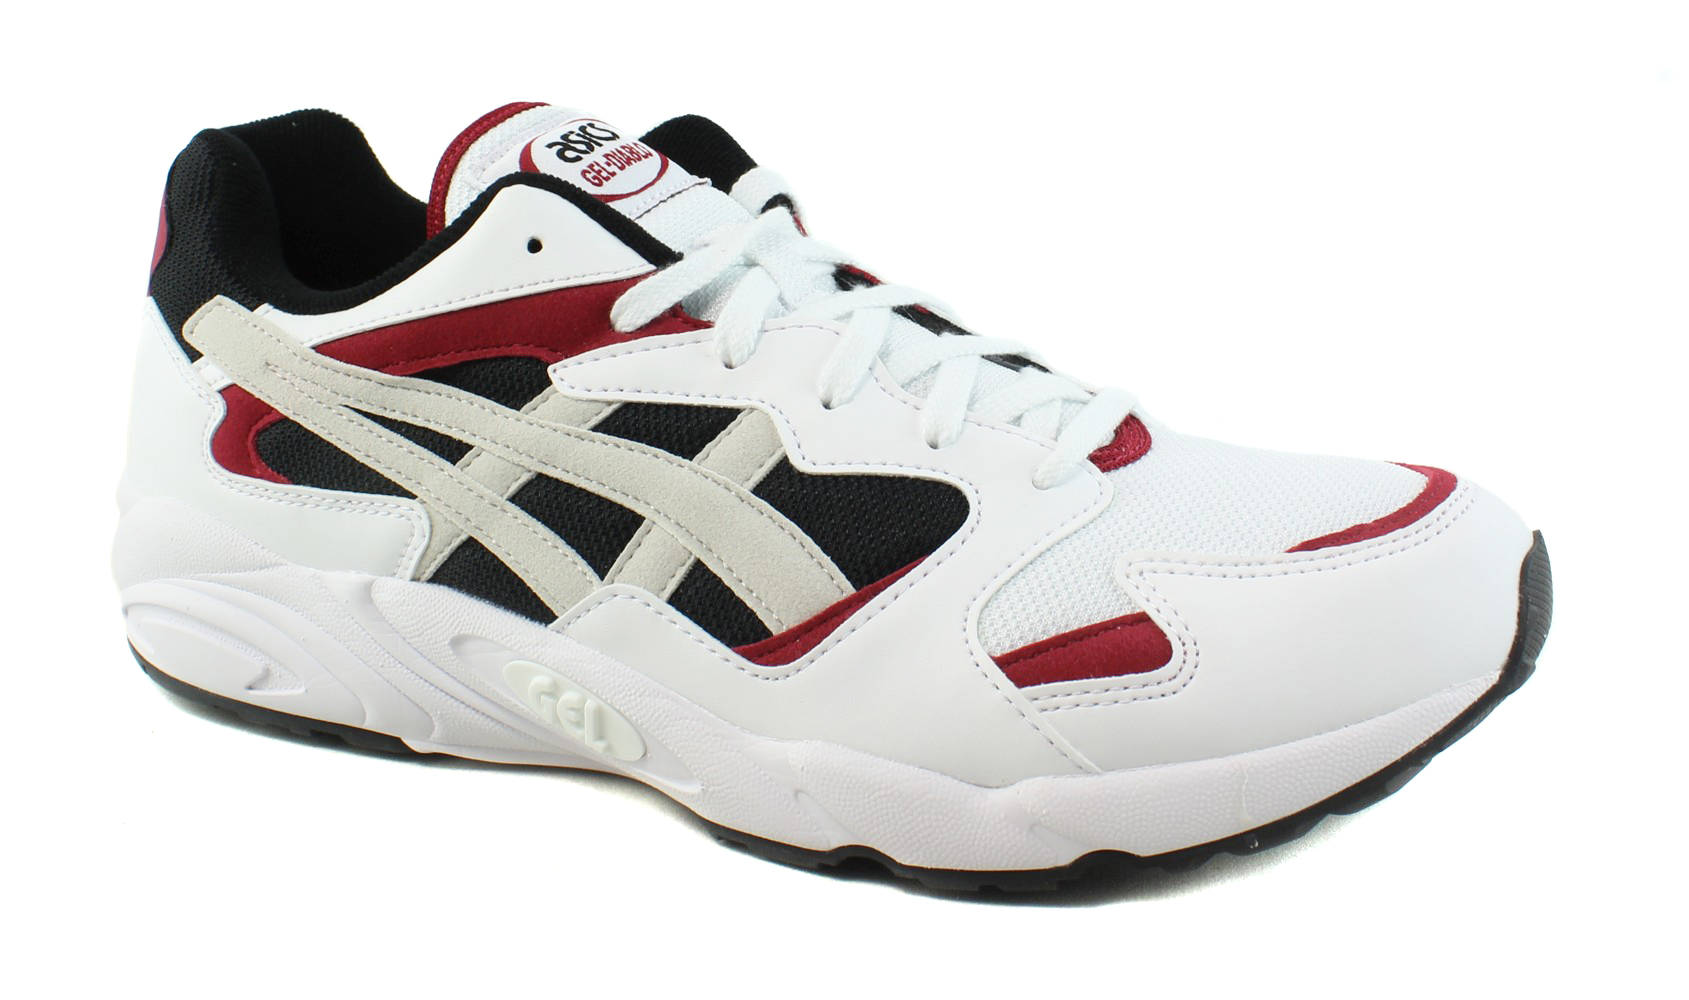 official photos a183a 70eea ASICS MENS Gel-Diablo White Size 10.5 (234185)